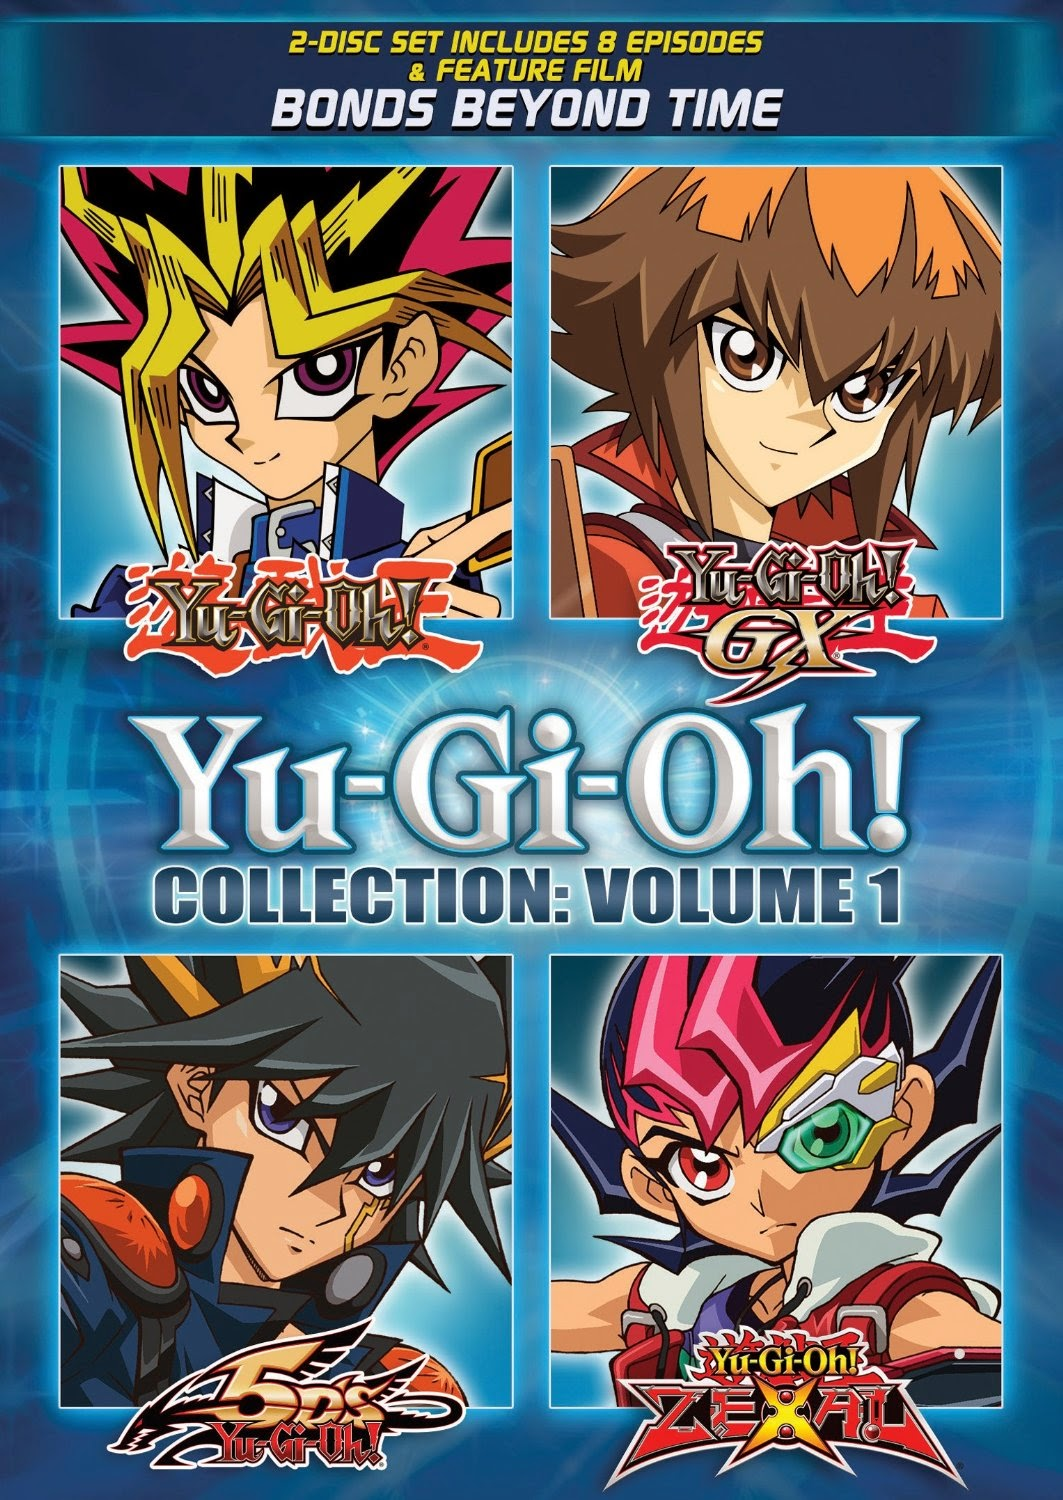 Yu-Gi-Oh! Collection: Volume 1